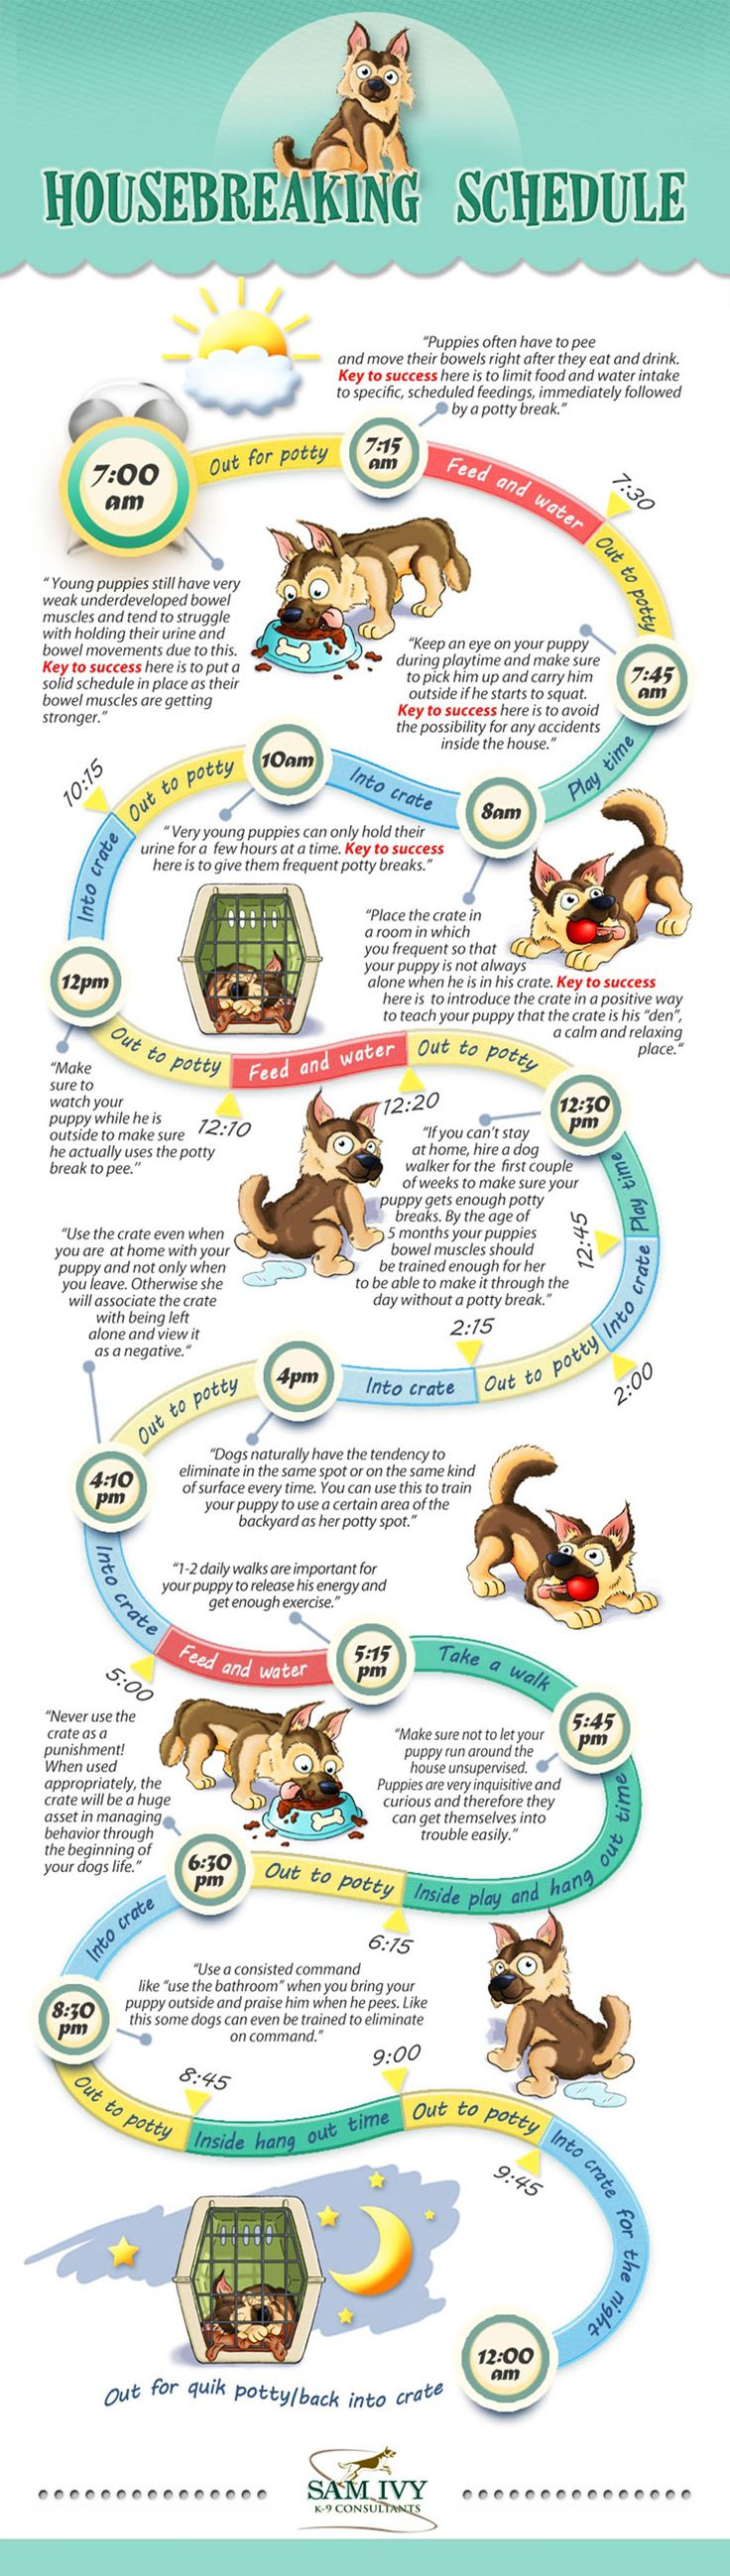 How to Housebreak a Puppy - Potty Training  infographic. Topic: house training, crate training, dog poop, pee,